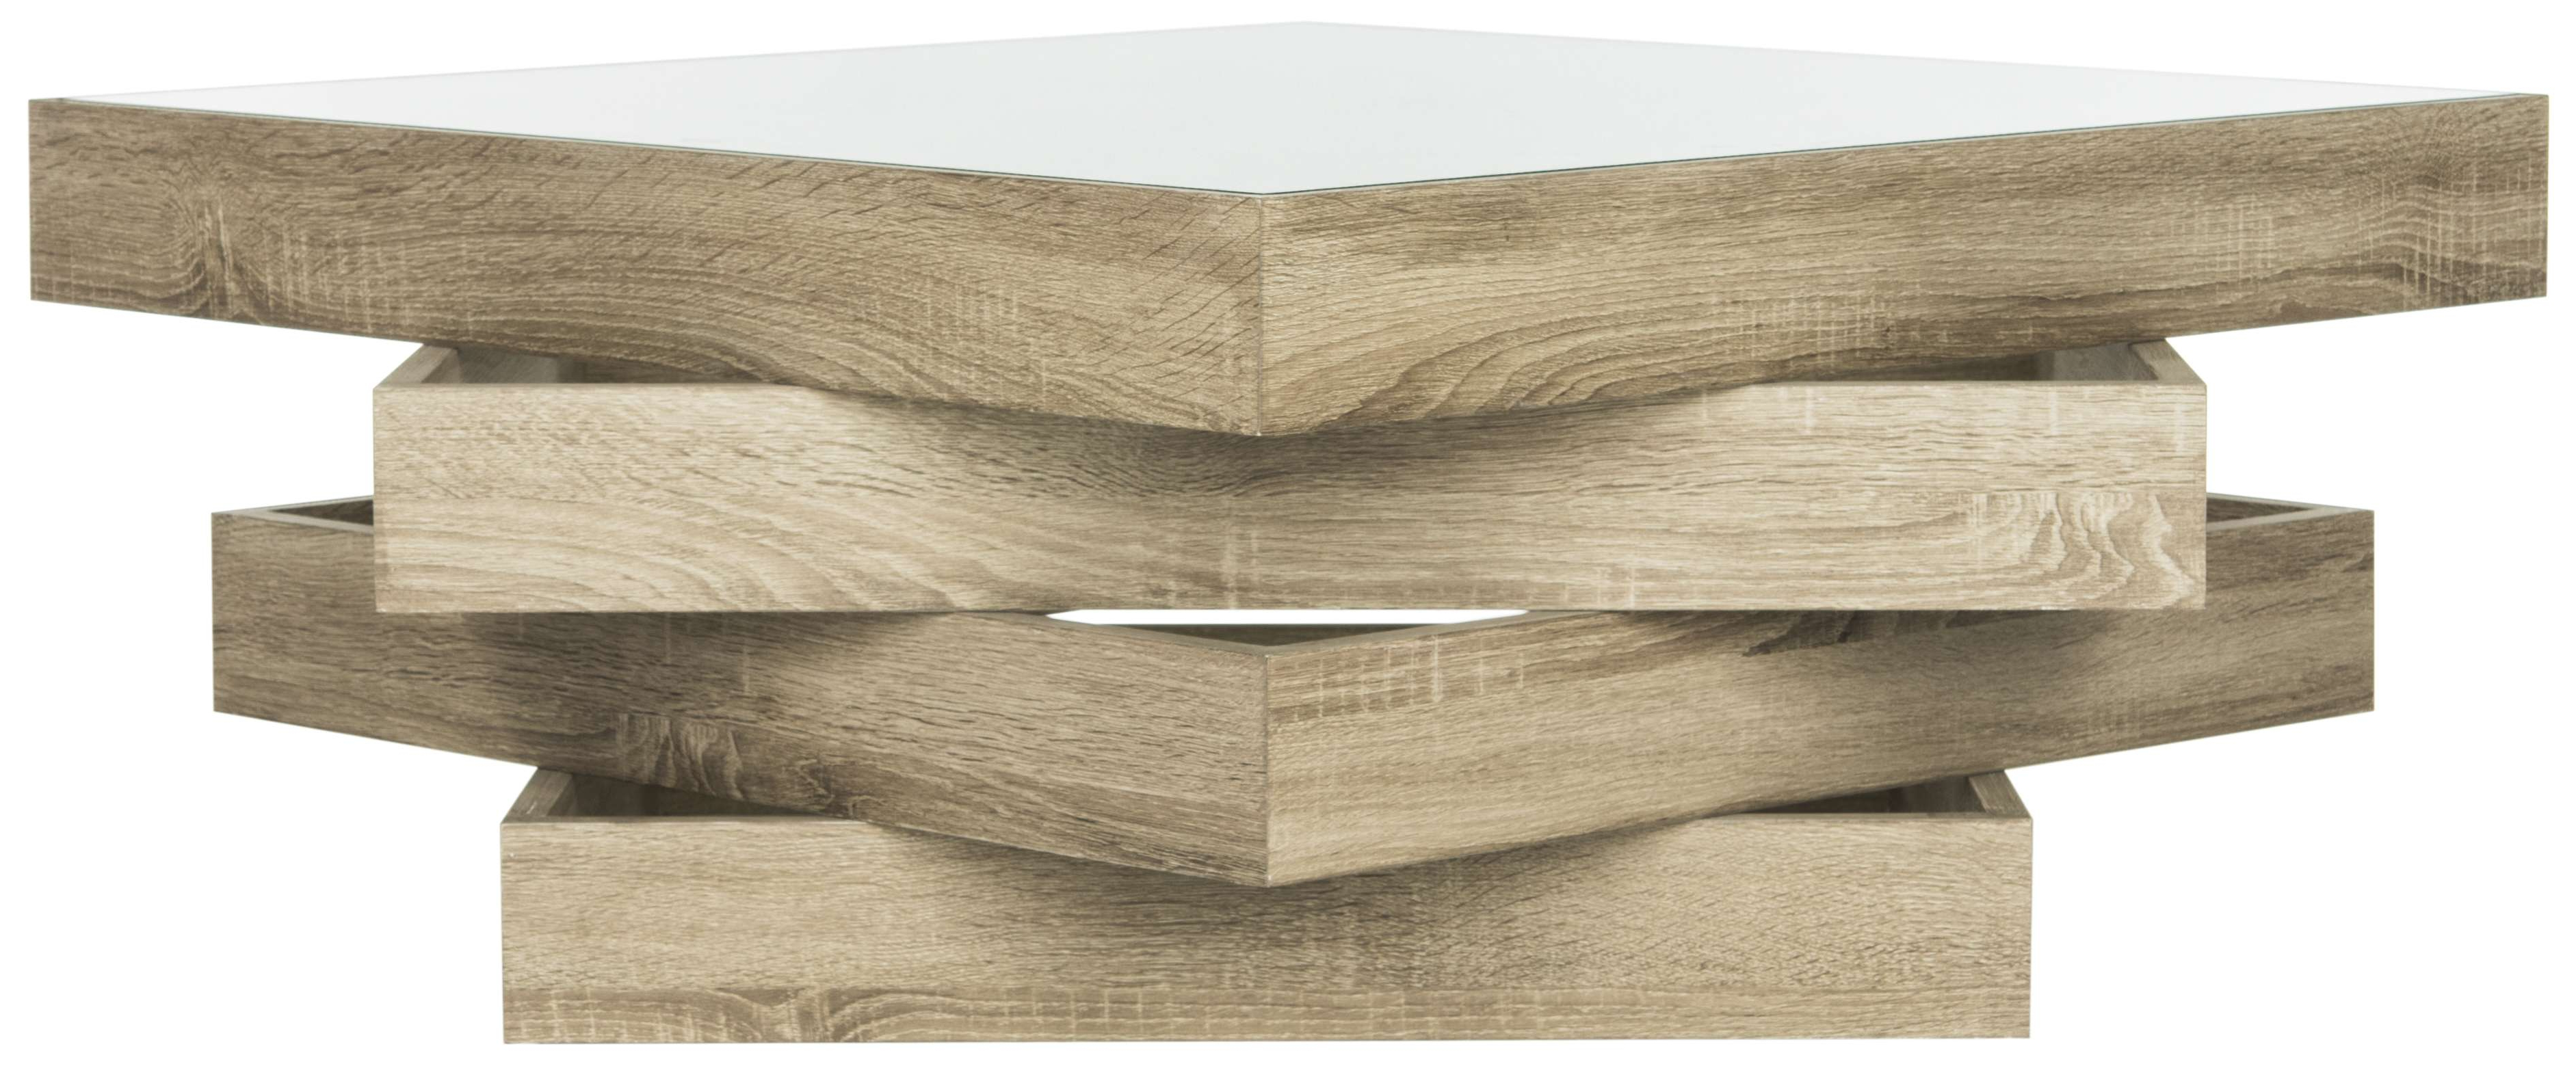 Safavieh Fox4250a For Most Up To Date Safavieh Anwen Geometric Wood Coffee Tables (View 8 of 20)